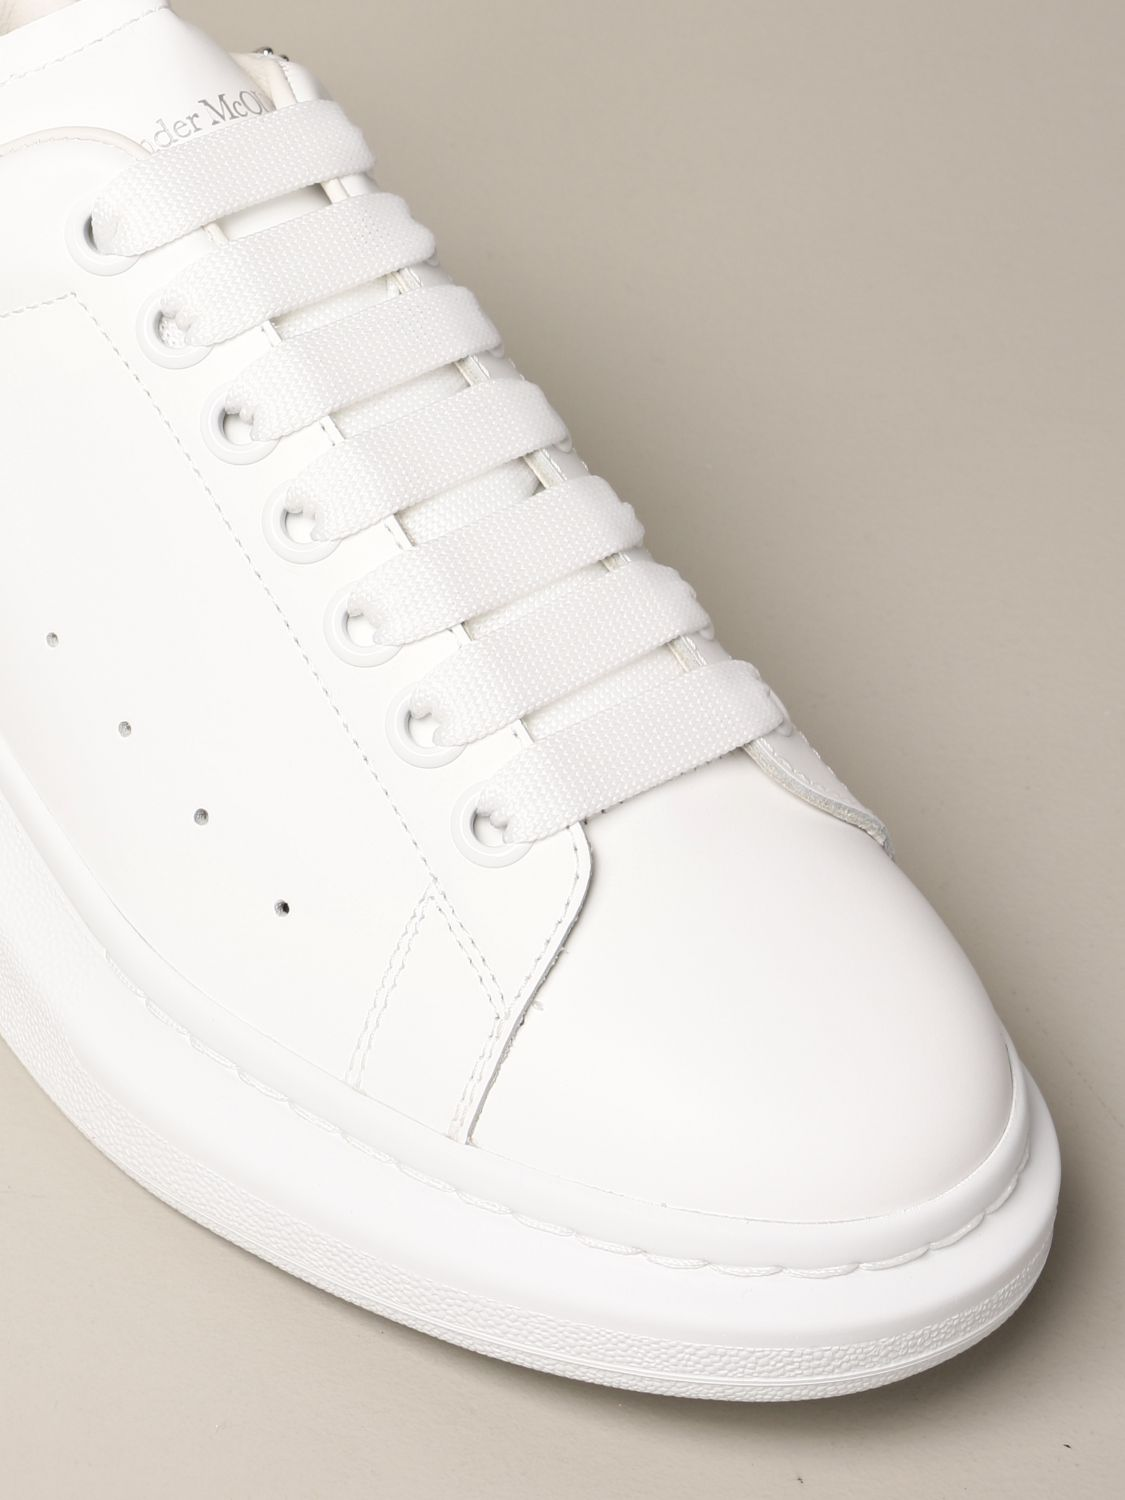 Sneakers Alexander Mcqueen: Alexander McQueen sneakers in leather with micro studs white 4